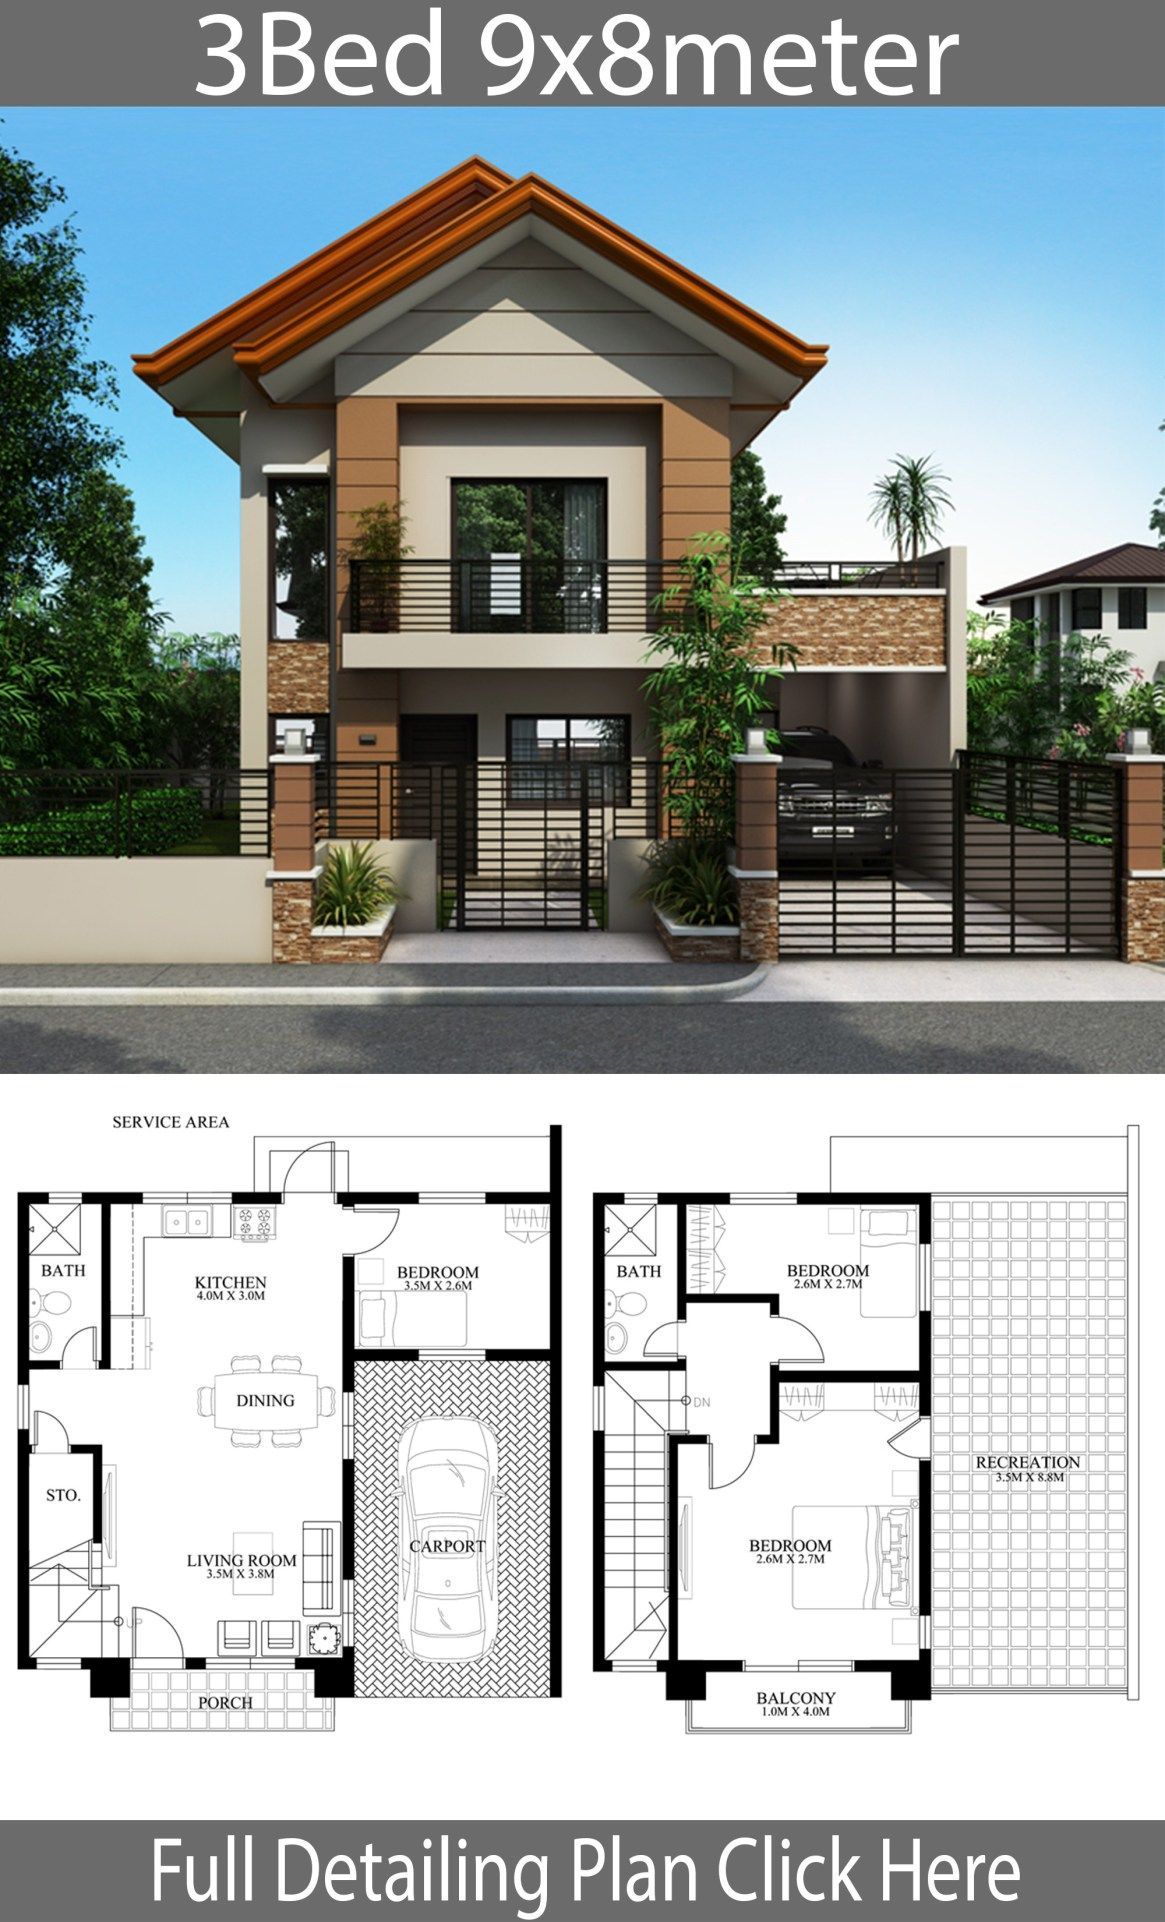 Home design plan 9x8m with 3 bedrooms | Simple house design